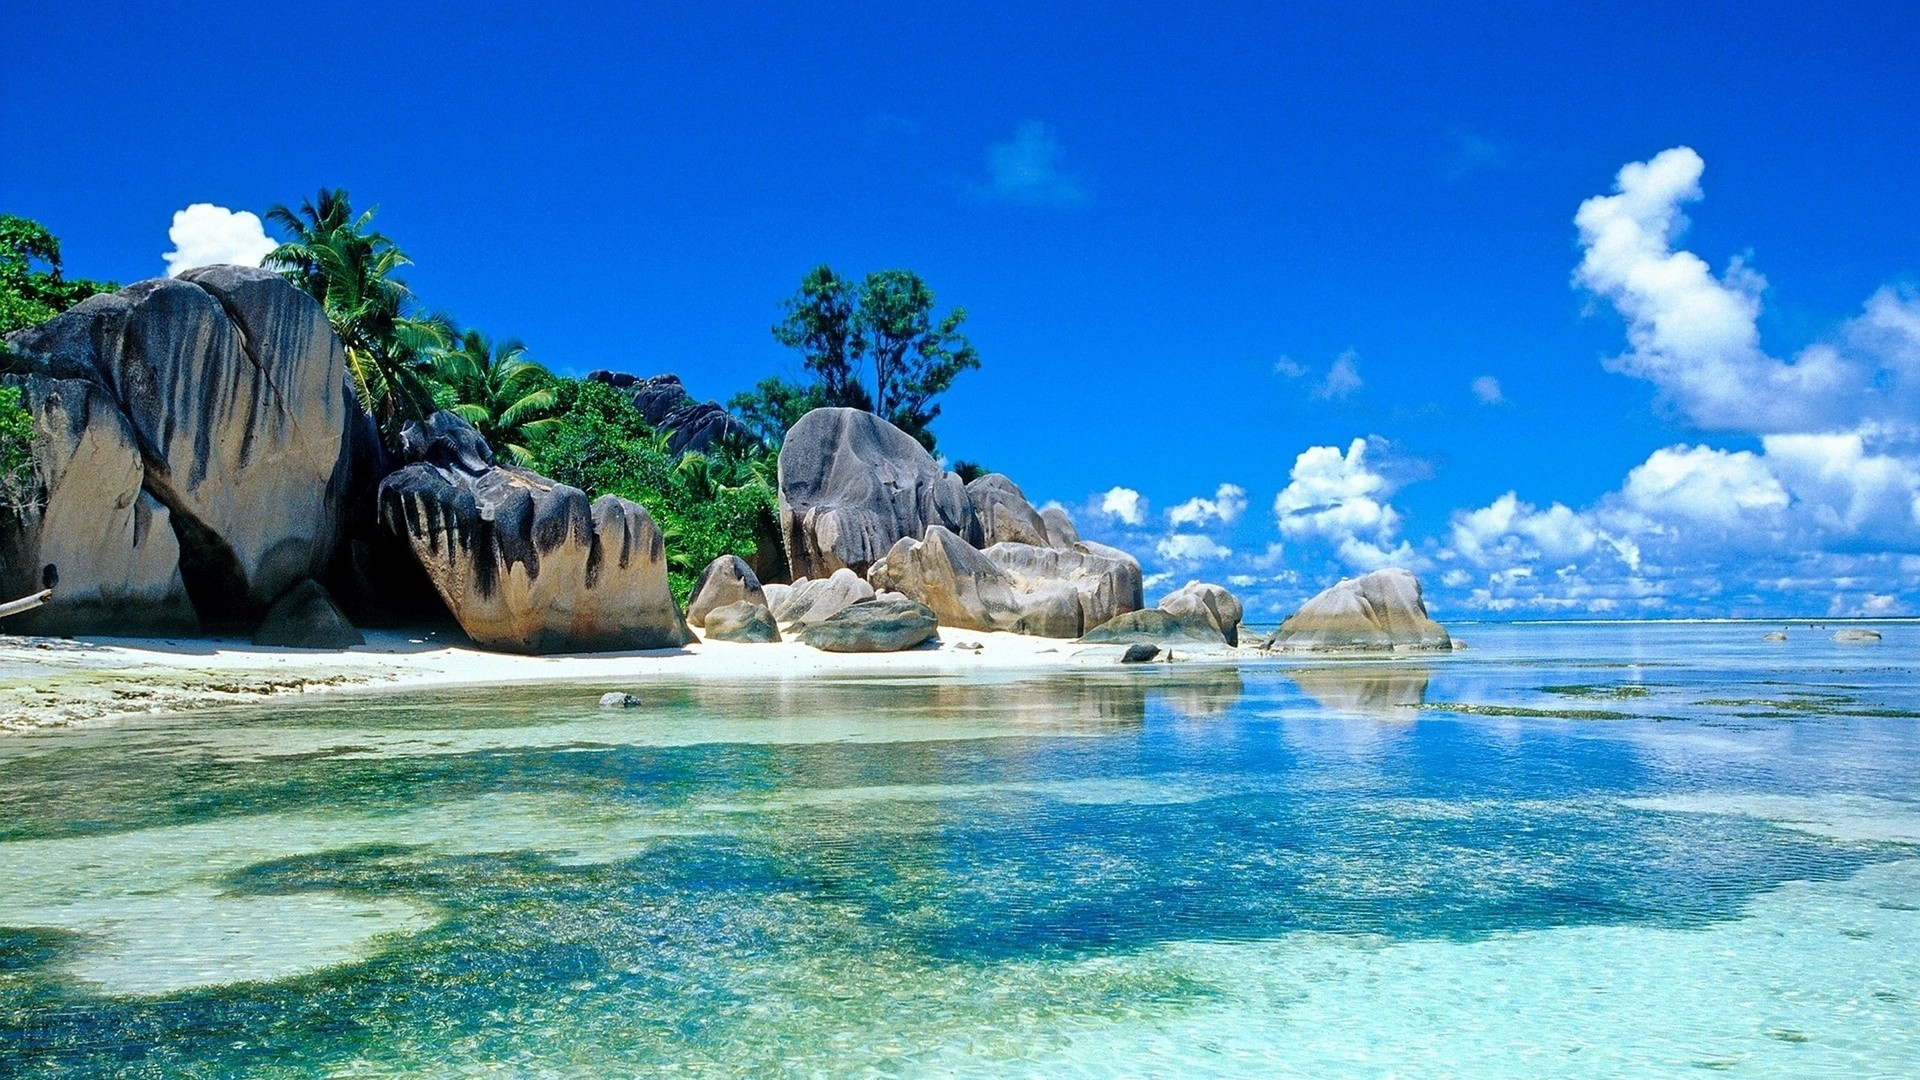 HD Beach Wallpapers 1920x1080 (64+ images)